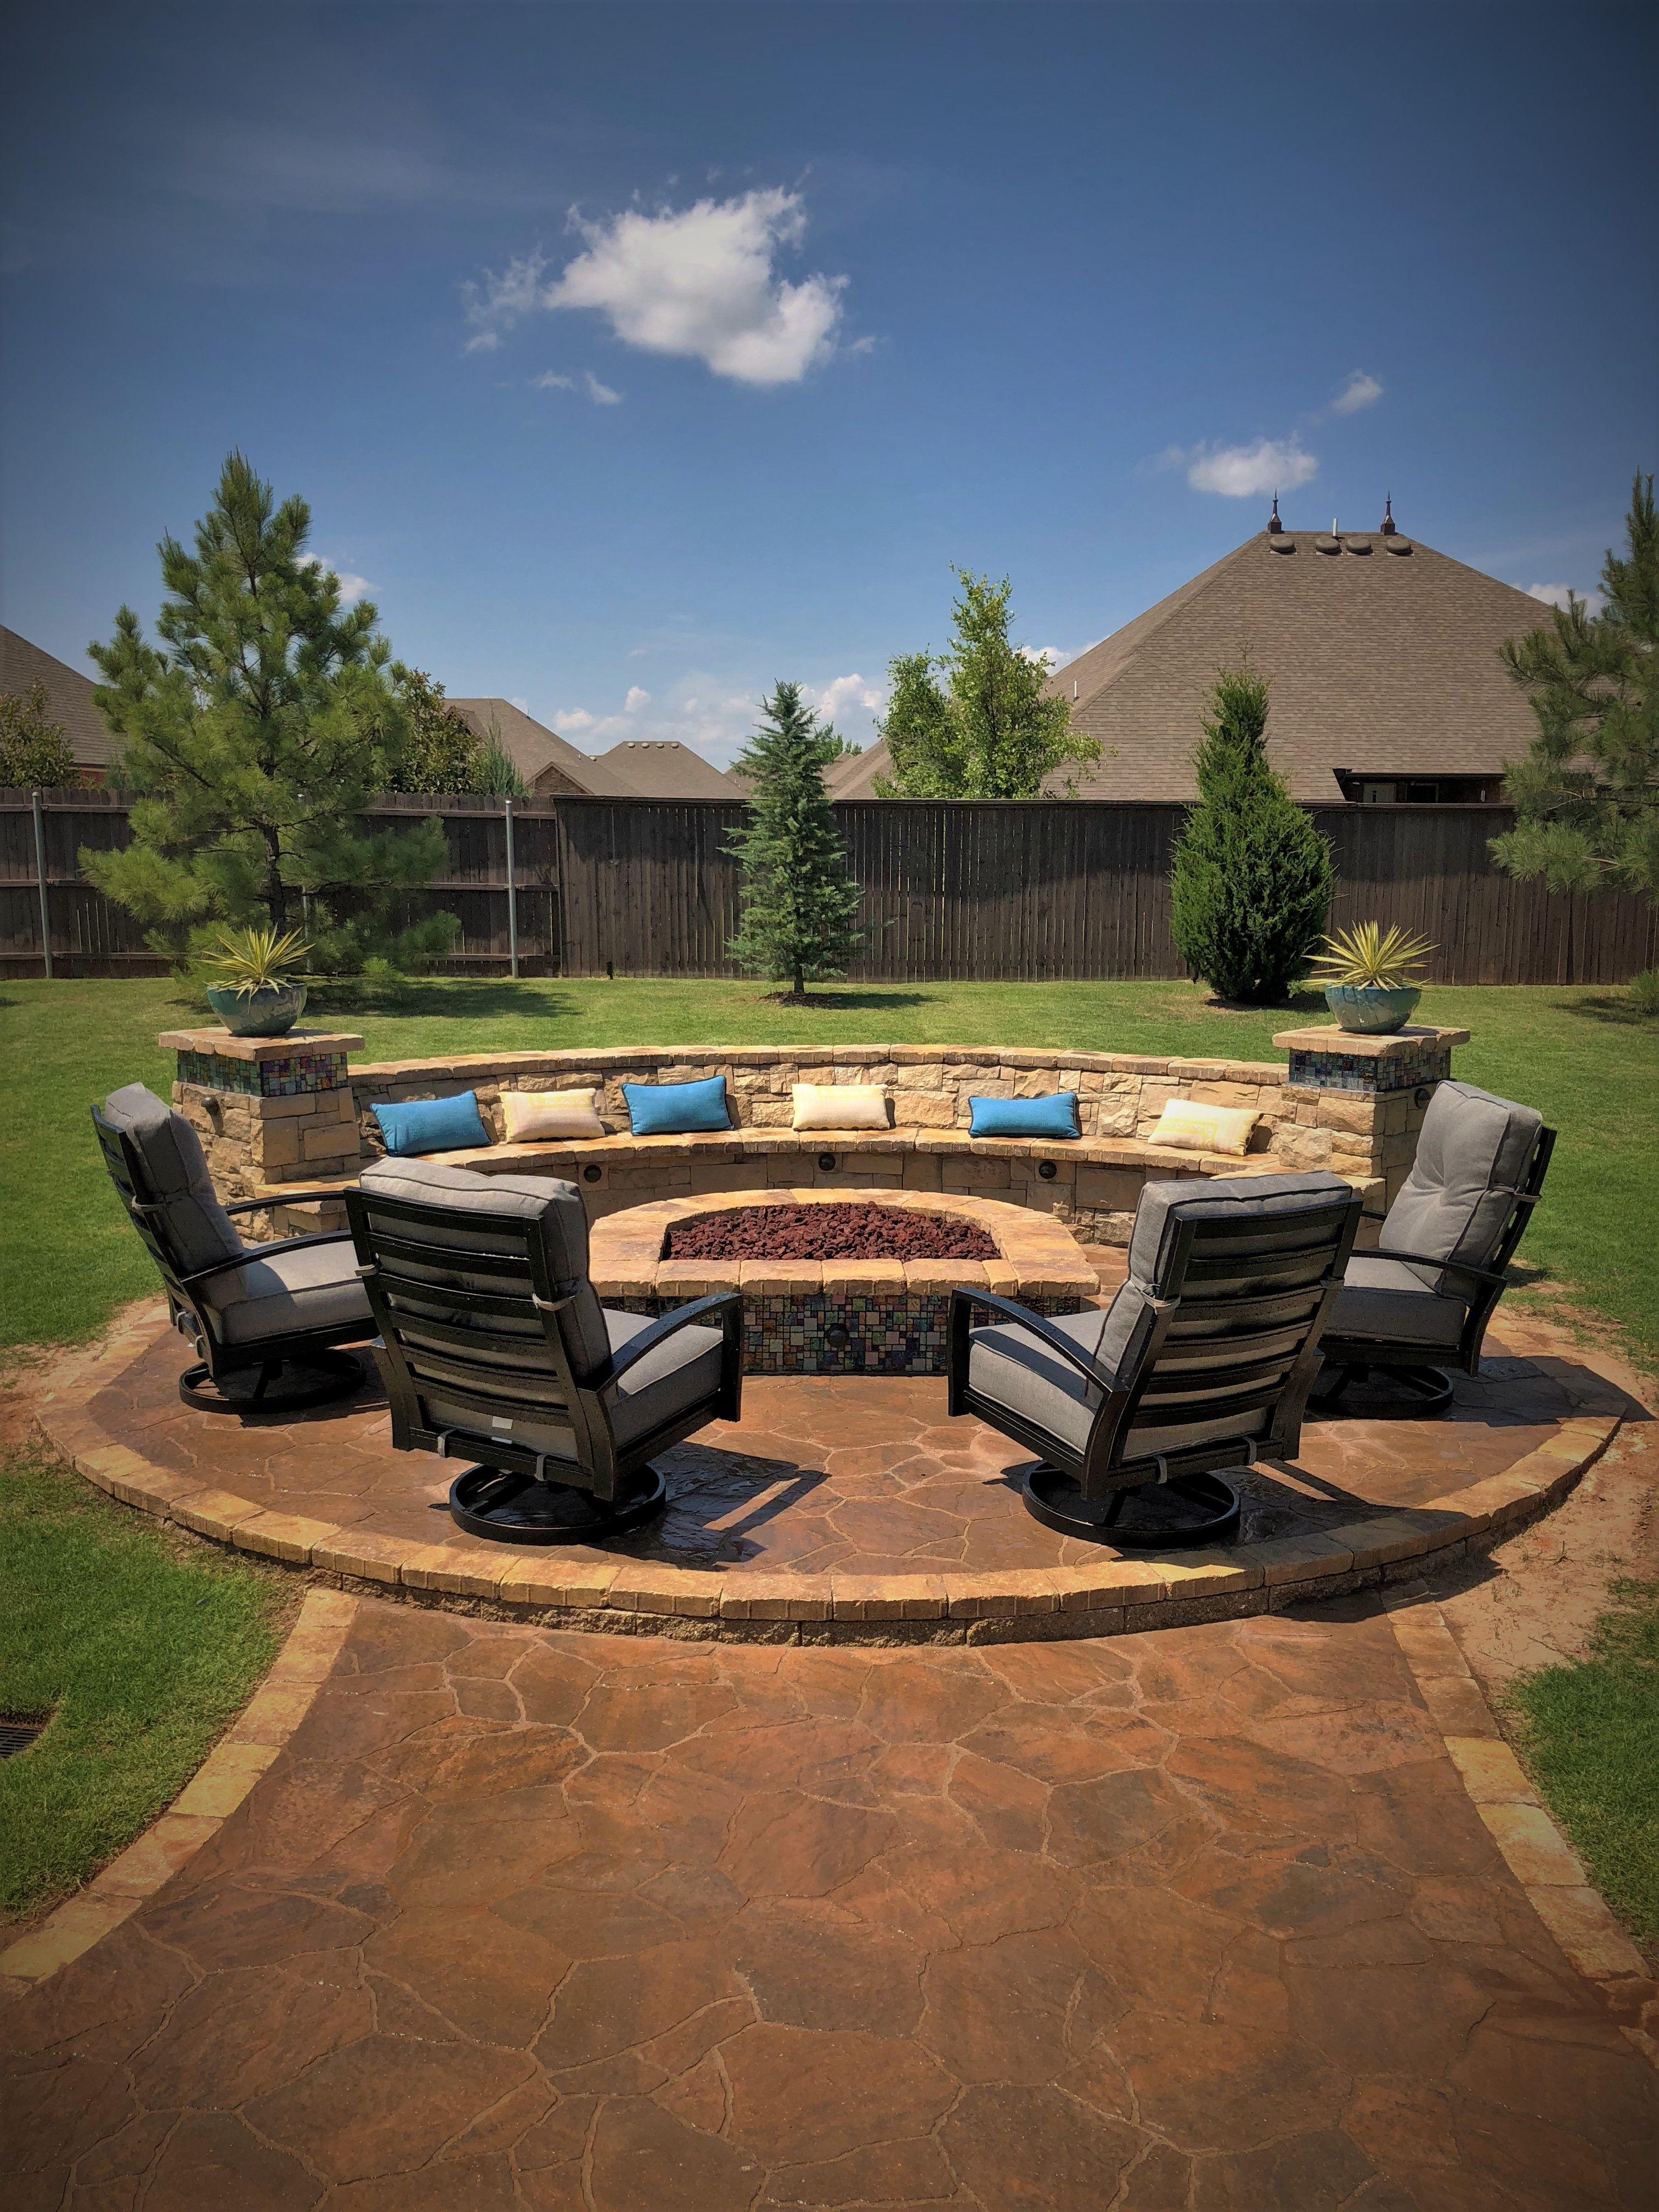 Custom Fire Pit Glass Tile inlay Paver patio Outdoor